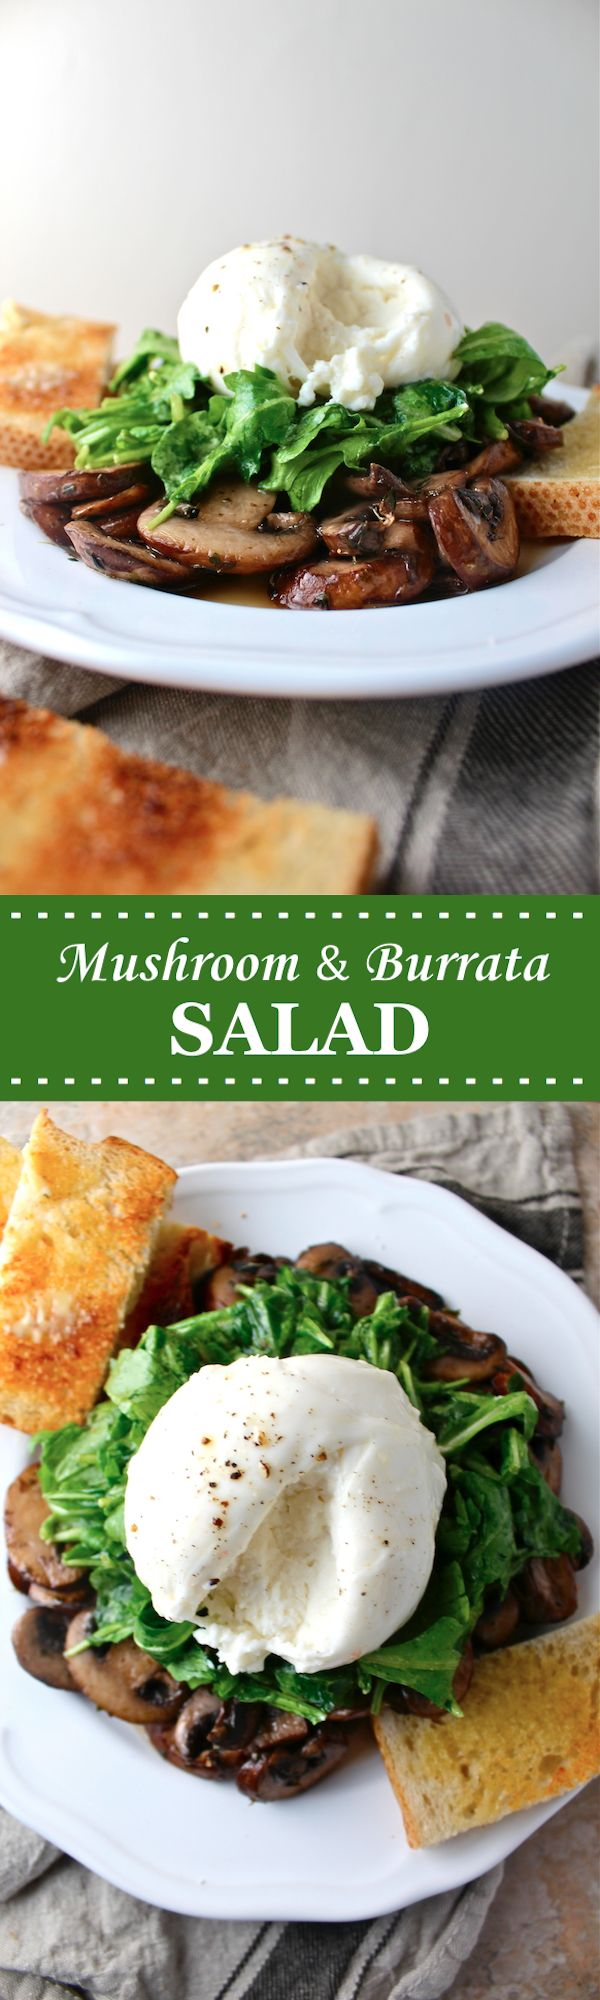 This Mushroom & Burrata Salad is loaded with creamy, sumptuous cheese and buttery, sautéed mushrooms - the dish of my dreams! | The Millennial Cook #salad #arugula #mushroom #burrata #italian